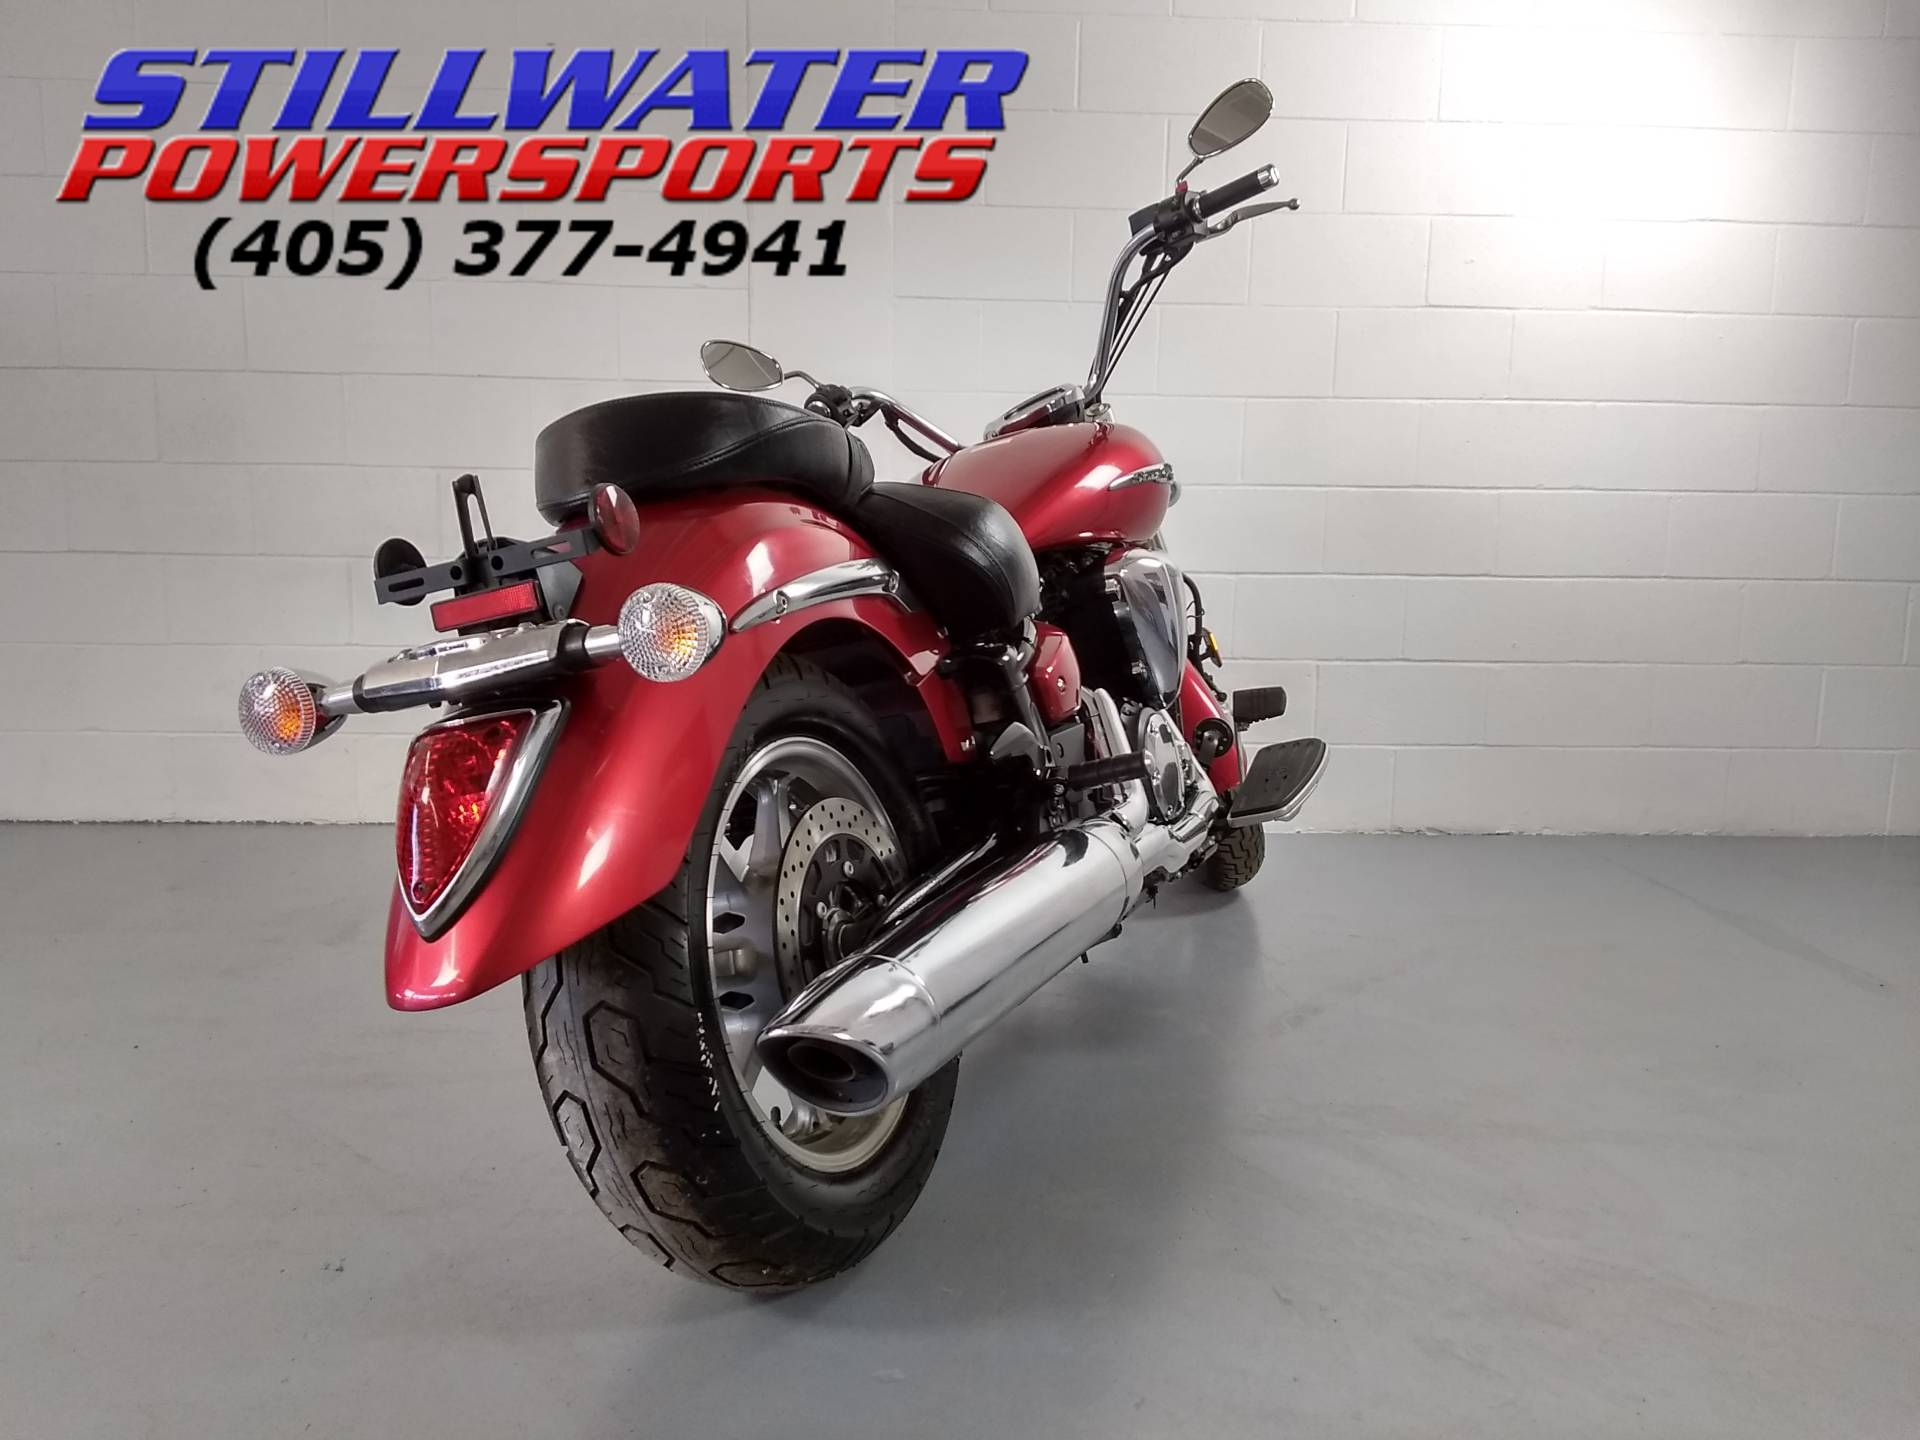 2012 Yamaha V Star 1300 in Stillwater, Oklahoma - Photo 3